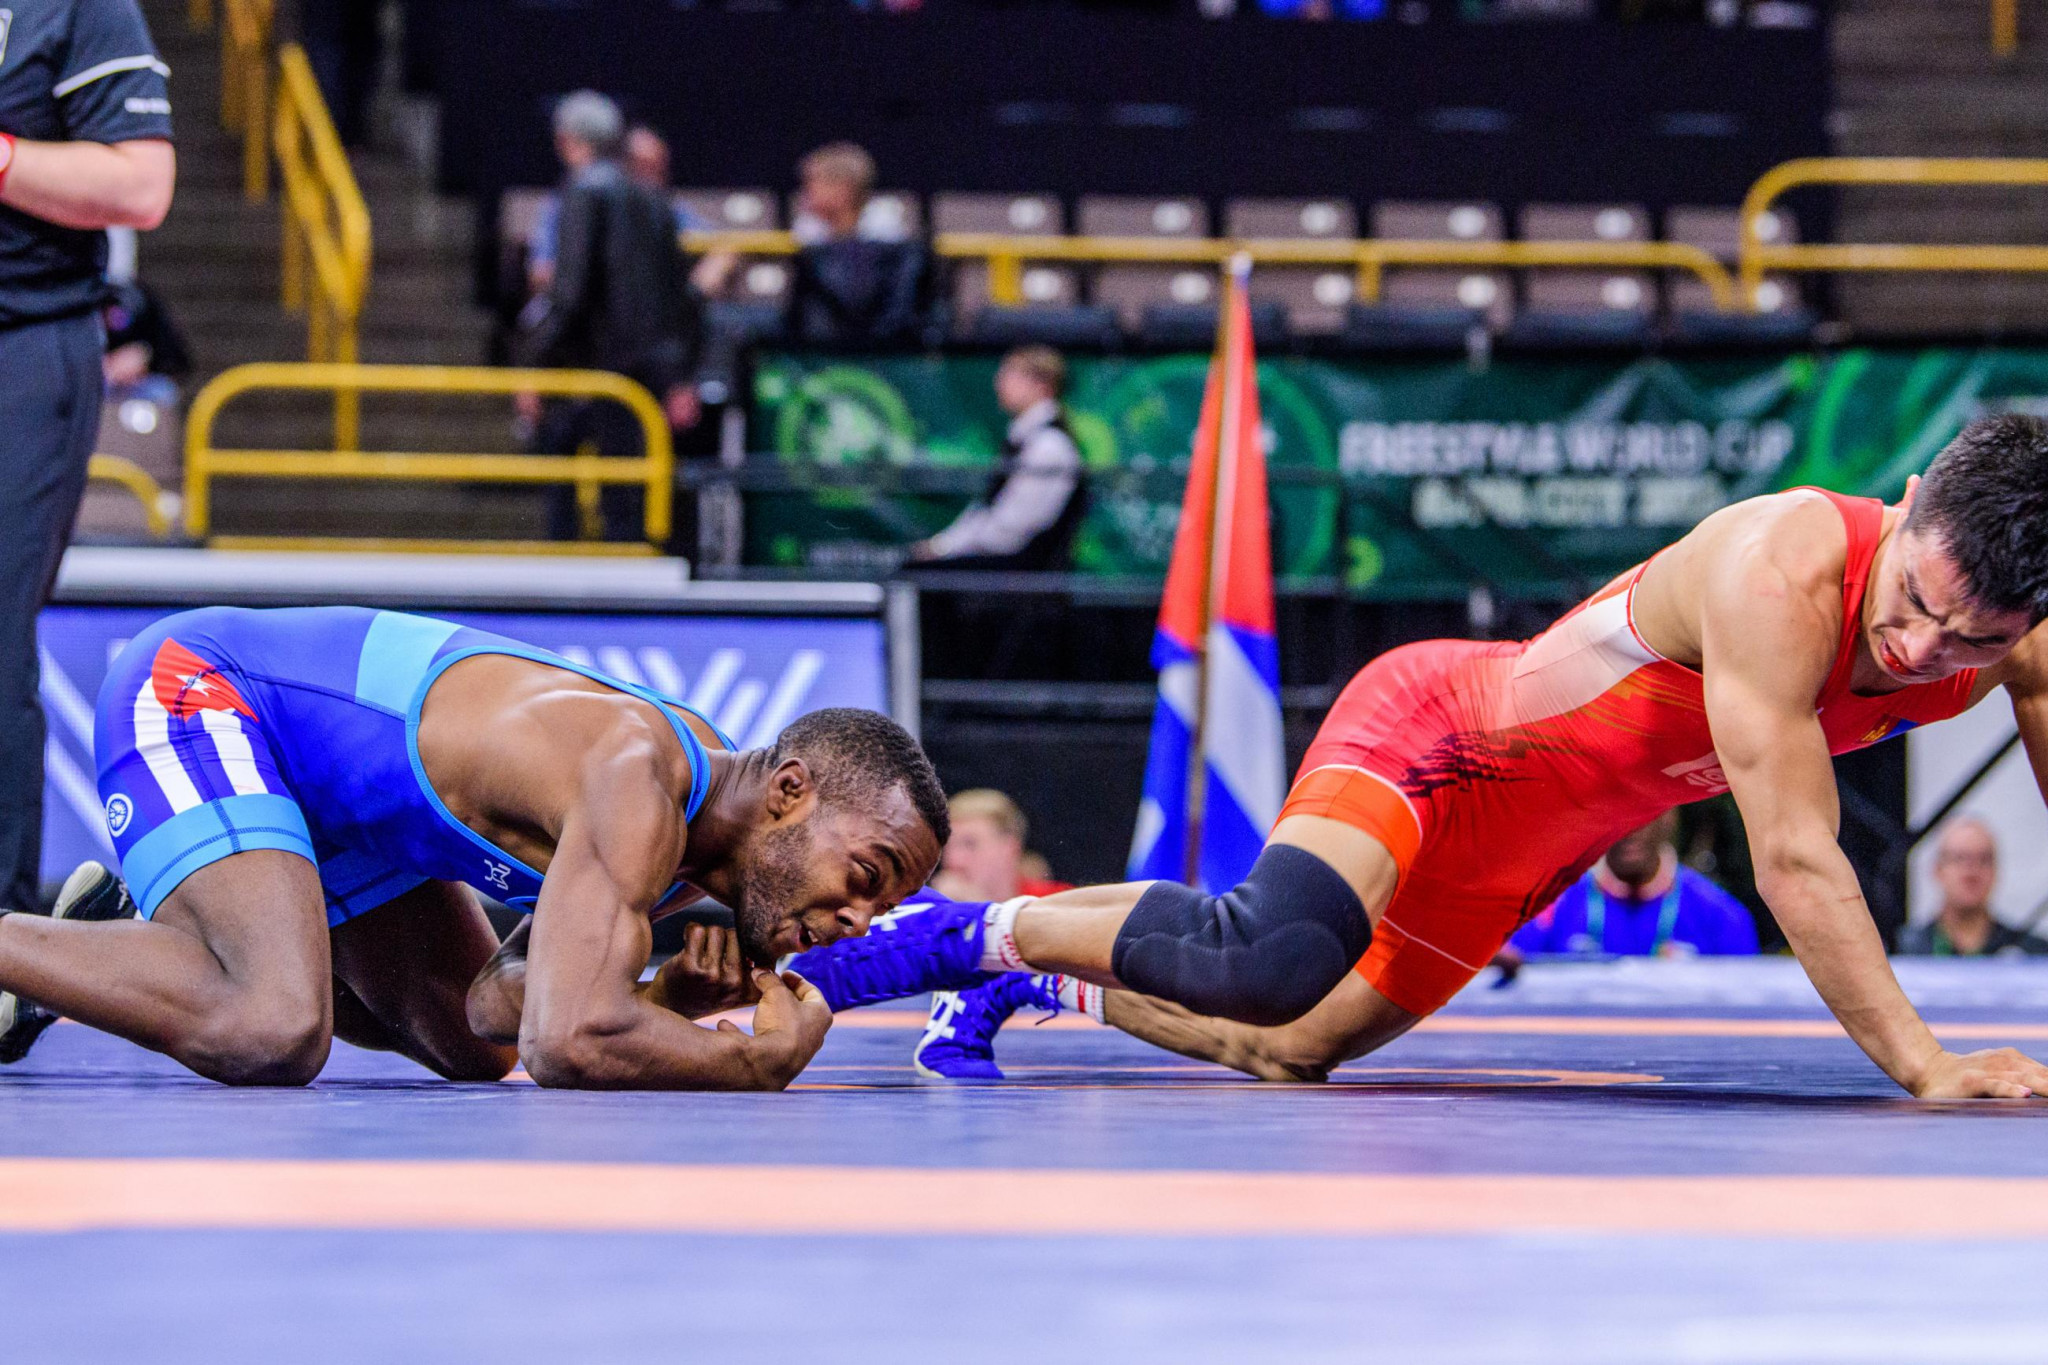 World's best under-23 wrestlers descend on Bucharest for World Championships